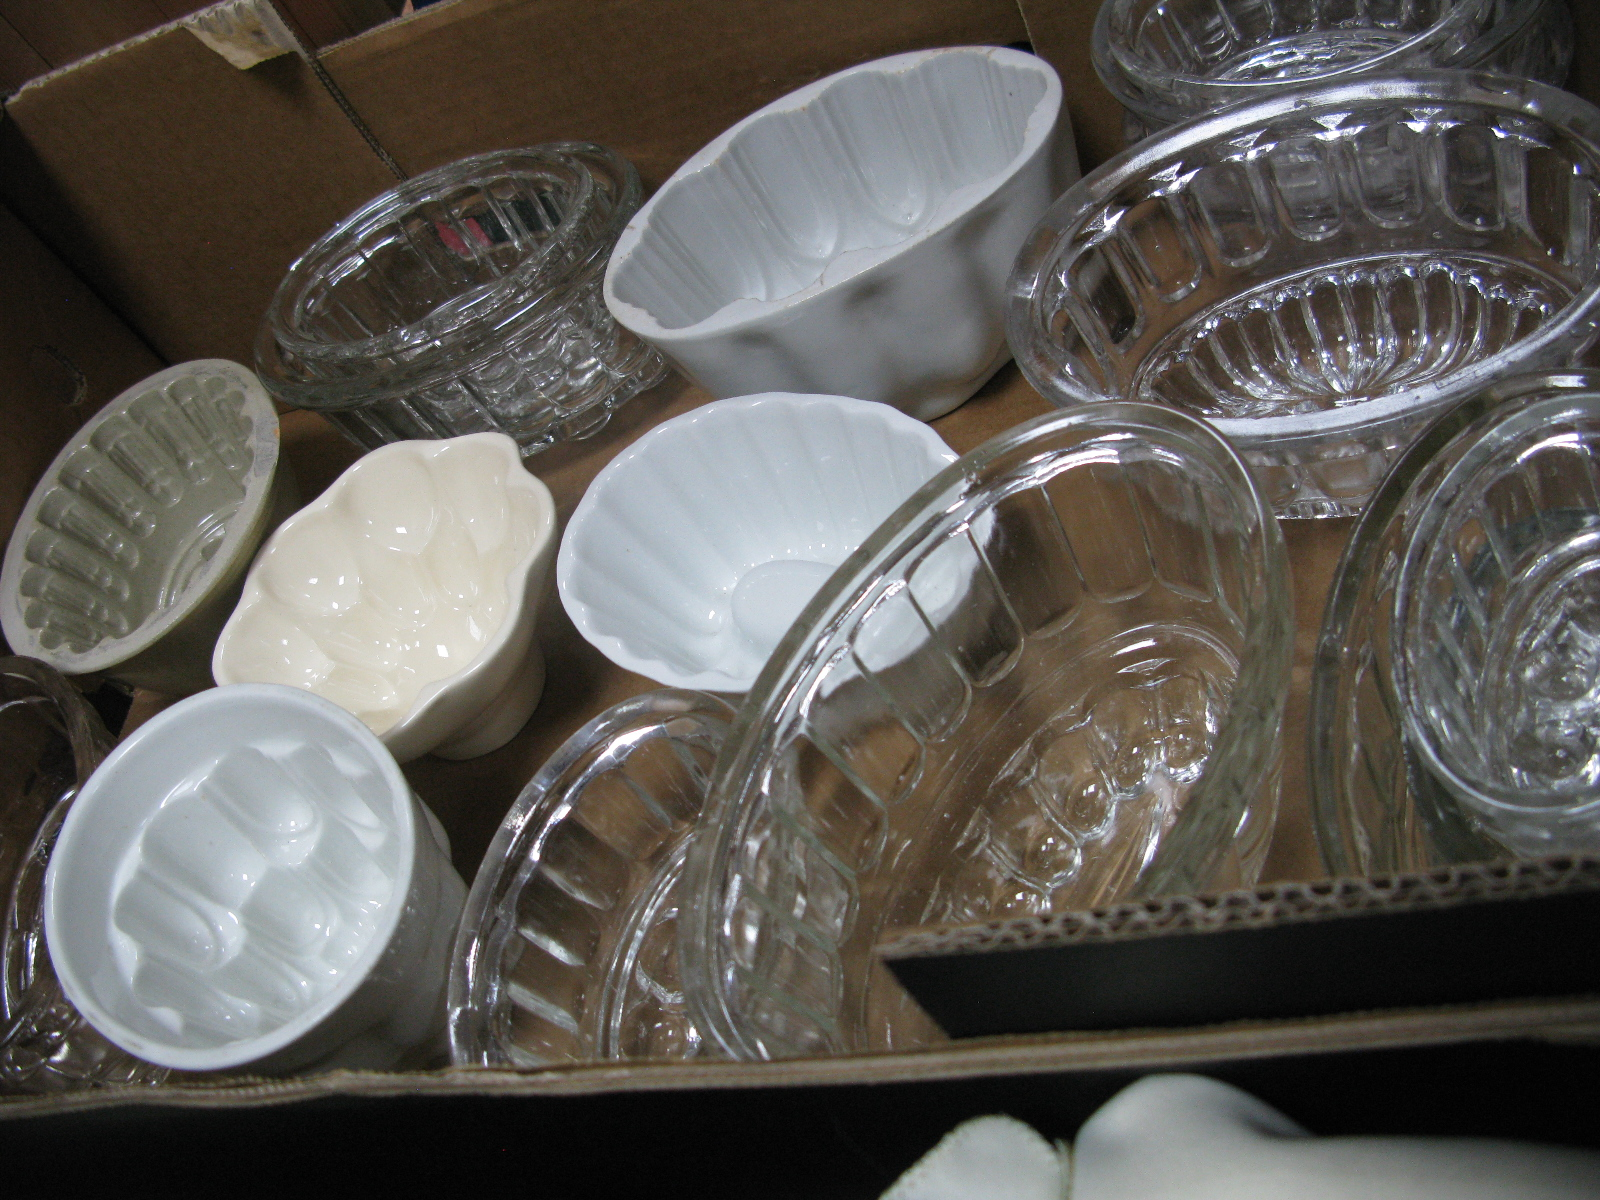 Lot 1054 - A Collection of Glass and Ceramic Moulds - One Box